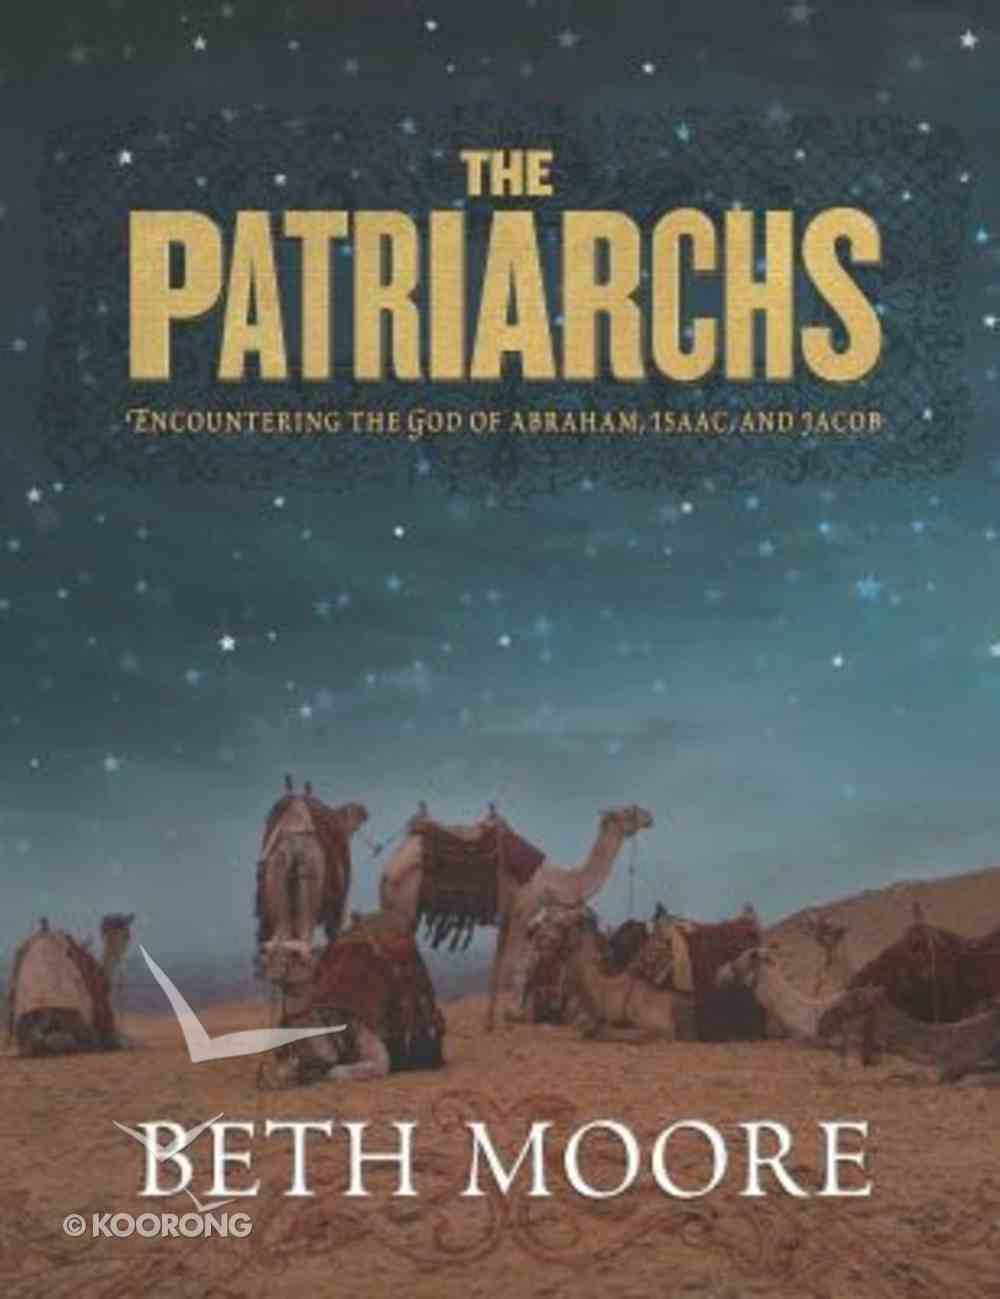 Patriarchs, the - Encountering the God of Abraham, Isaac, and Jacob (CD Set) (Beth Moore Bible Study Audio Series) CD